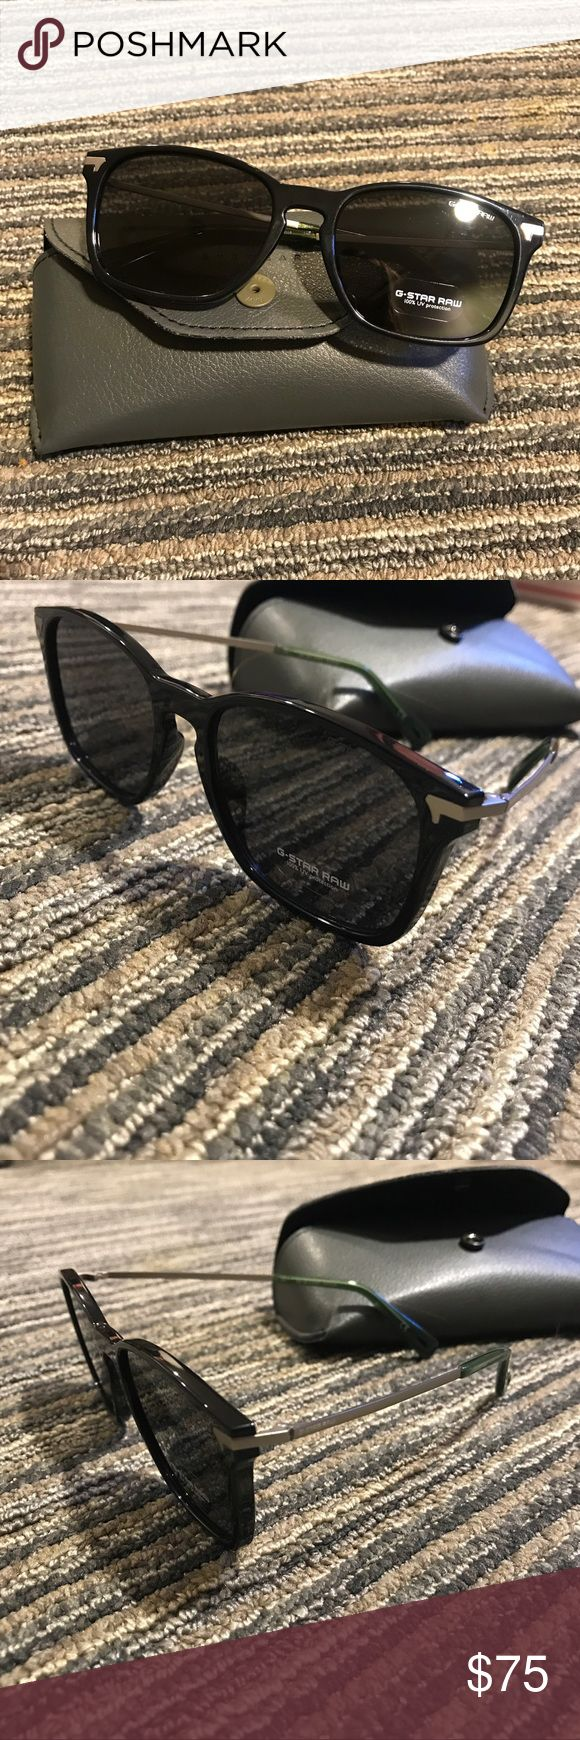 NWOT G-STAR RAW SUNGLASSES G-star raw sunglasses Never used 100% UV protection  Black, silver, and green G-star raw written on the top of one lenses Comes with case  Bundle and save! Prices are always negotiable 💜💙 G-Star Accessories Sunglasses